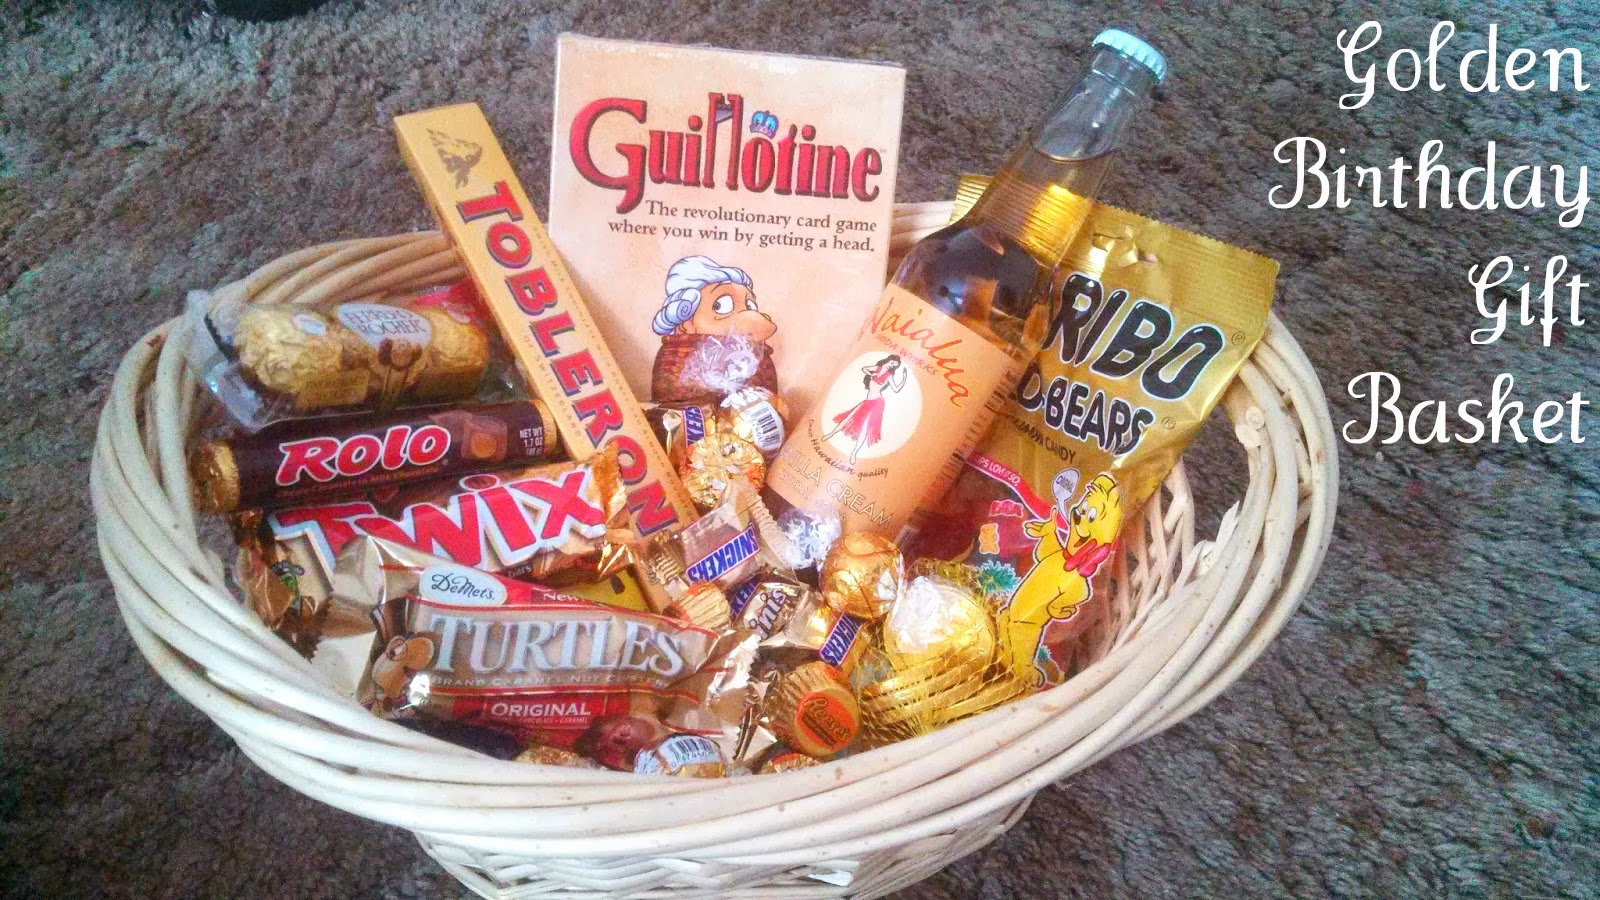 Golden Birthday Gift Basket